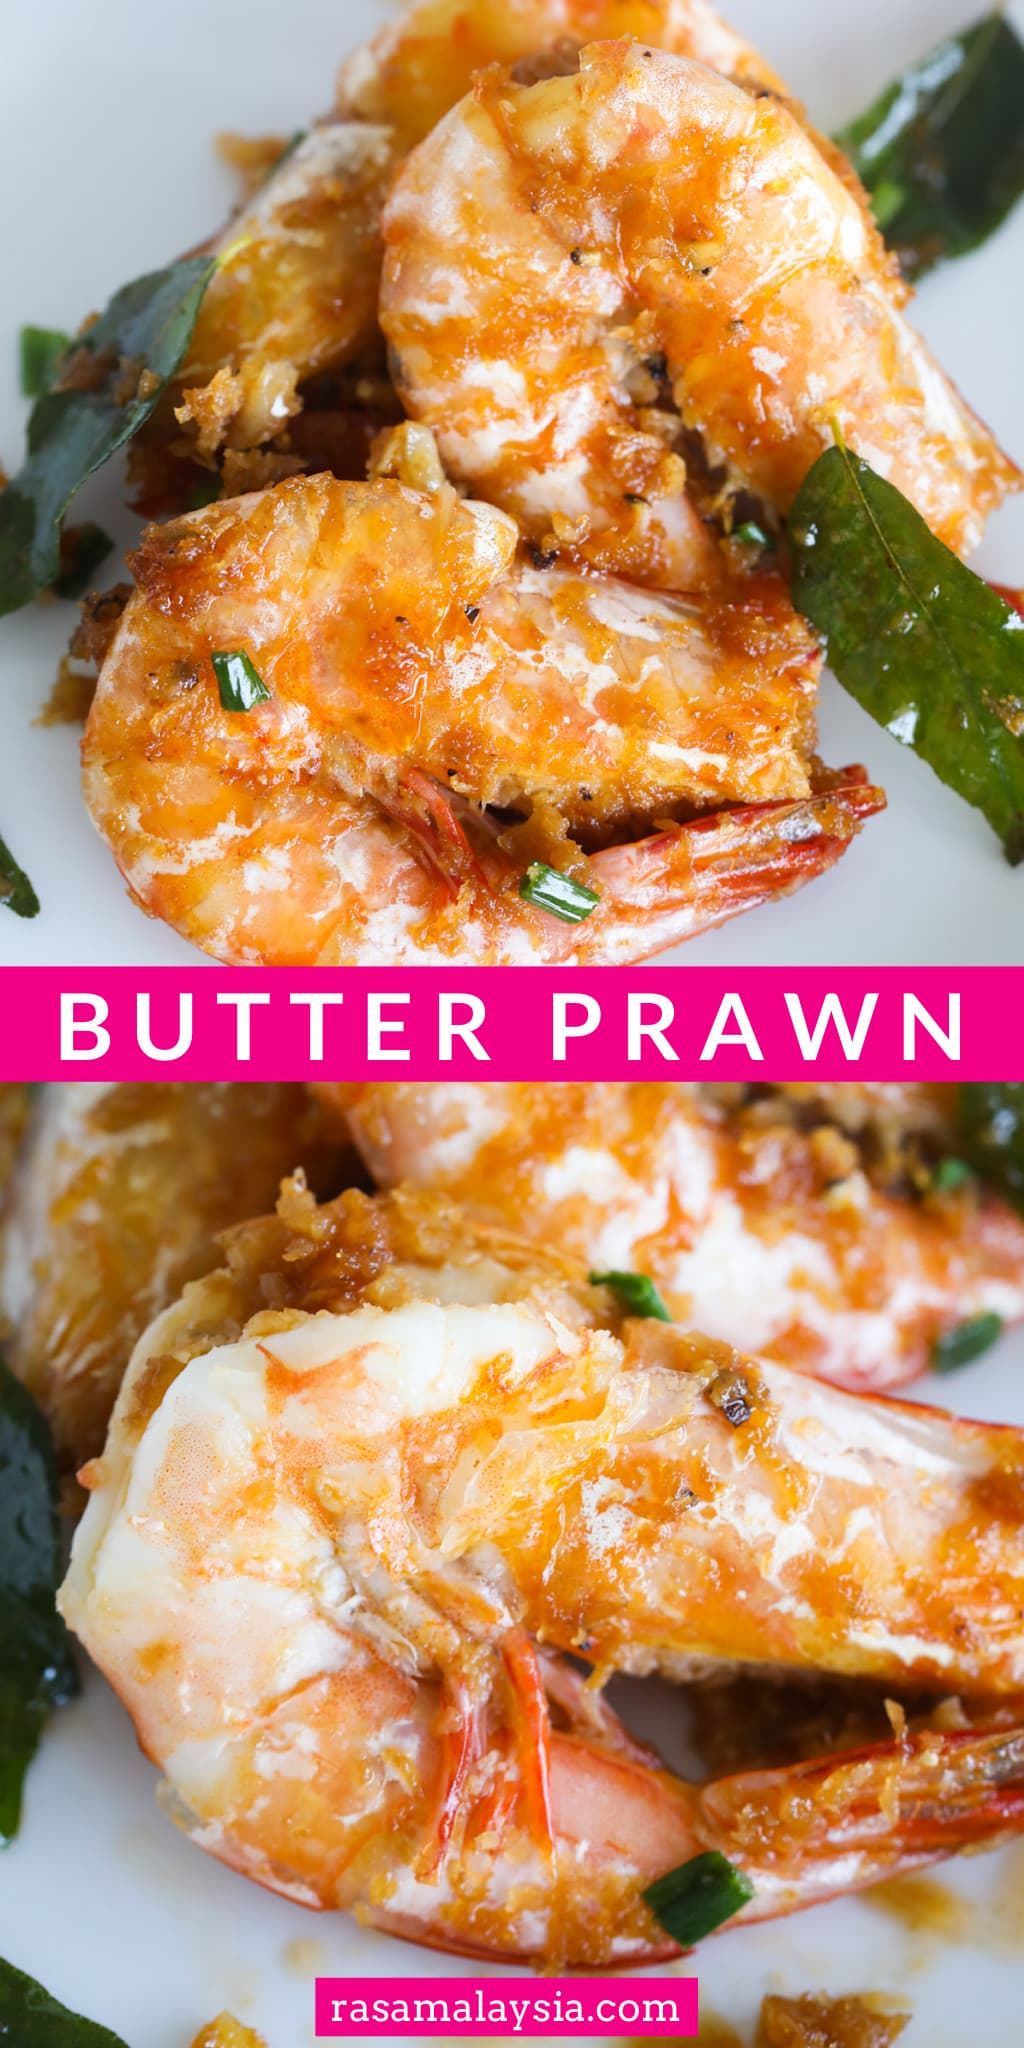 Butter Prawn is a Malaysian recipe that is buttery, salty, sweet, spicy, and garlicky. The main ingredients are prawn, butter, grated coconut and curry leaves.